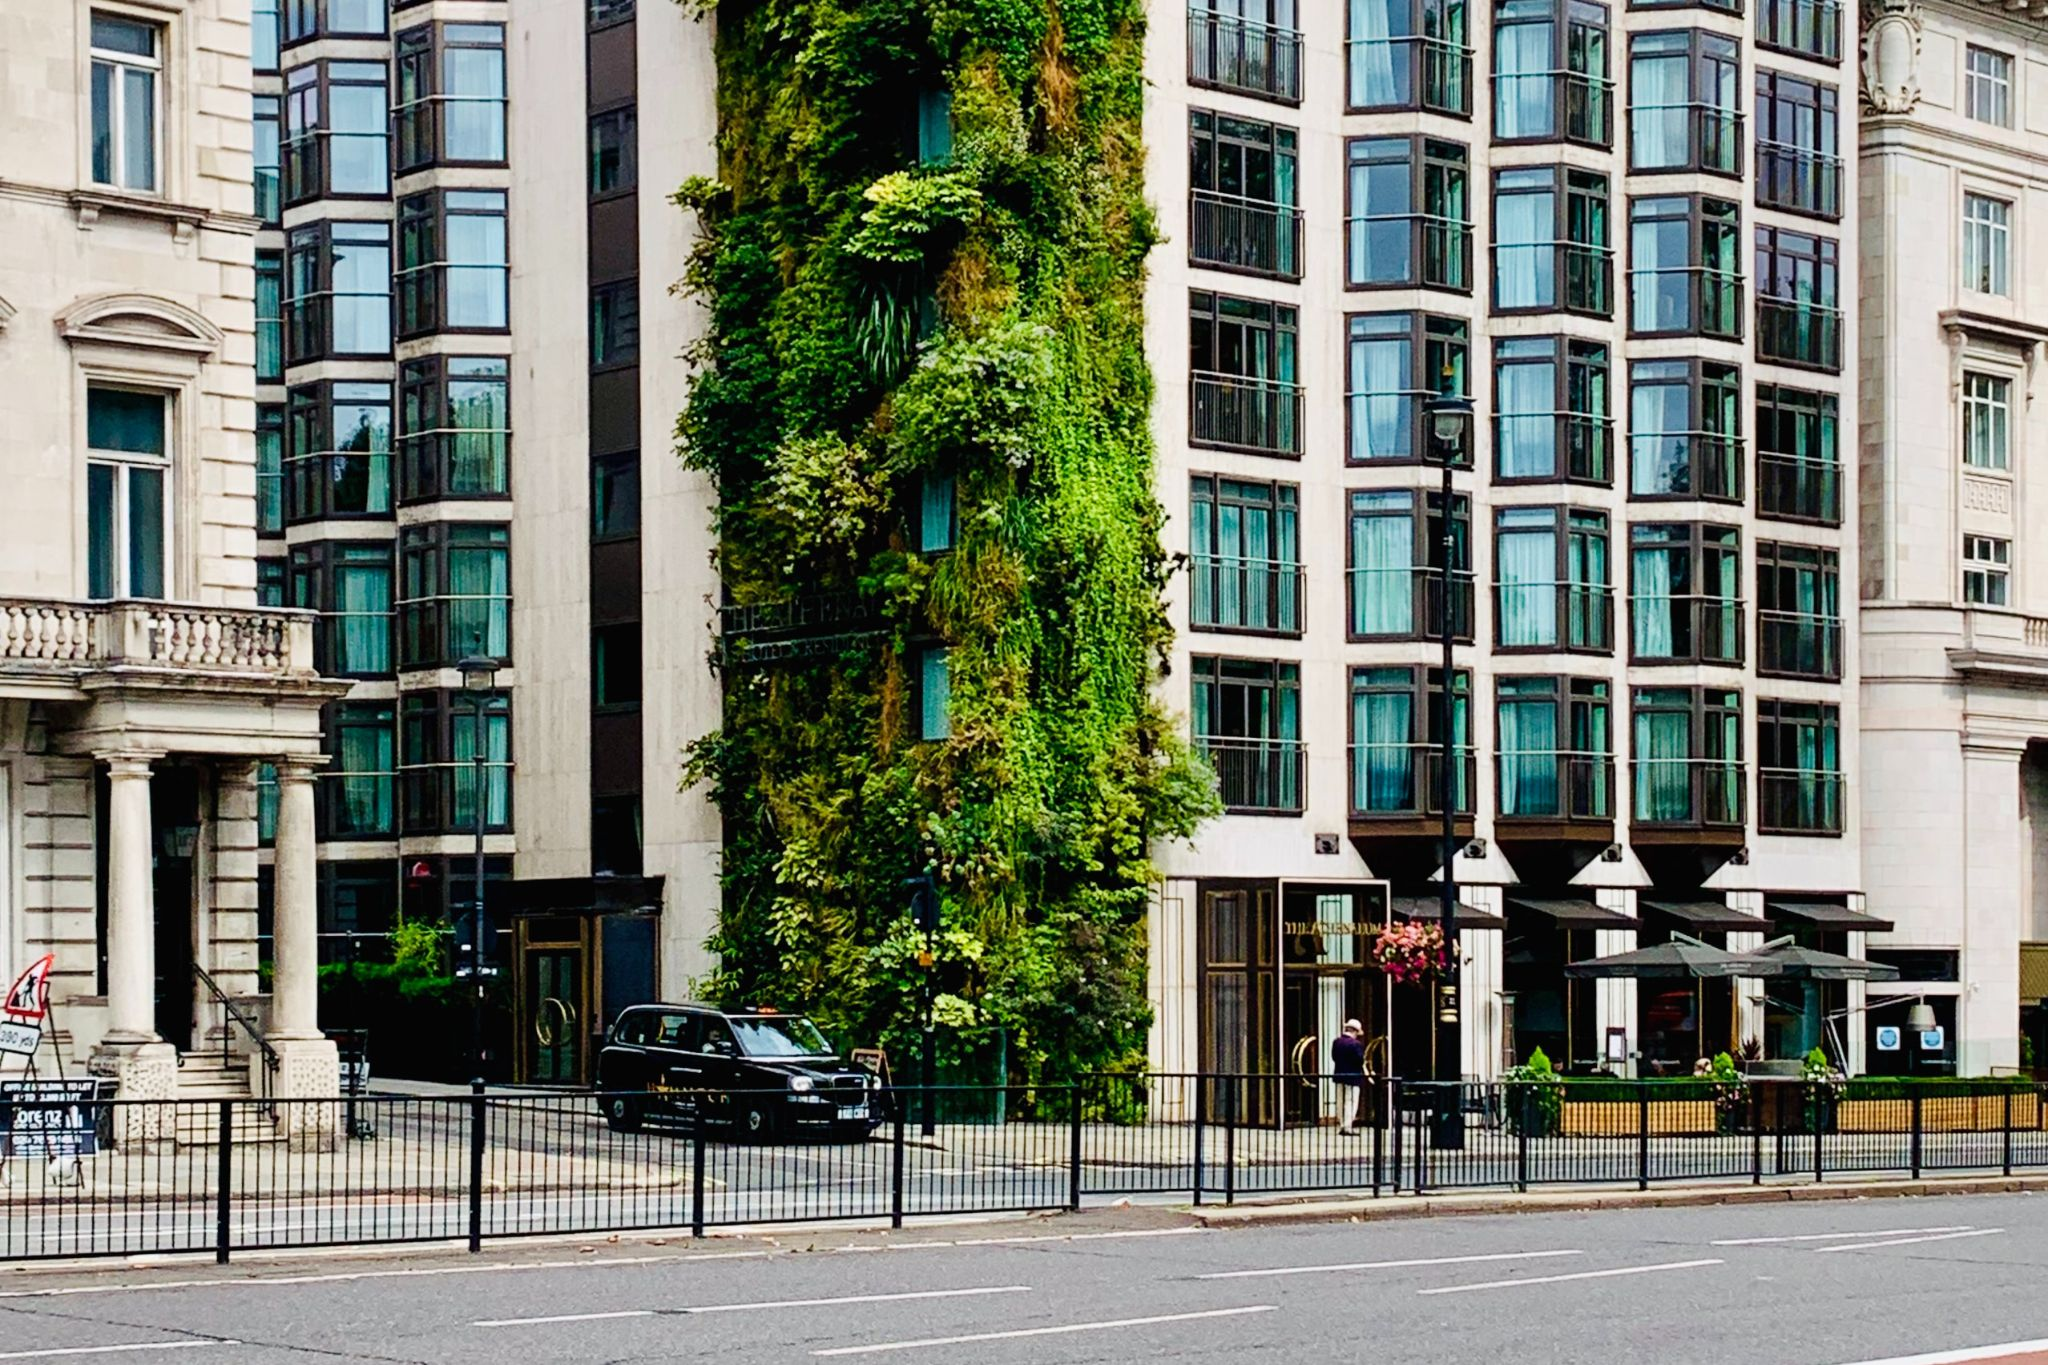 A green building in the middle of a city with a plant-filled exterior wall.